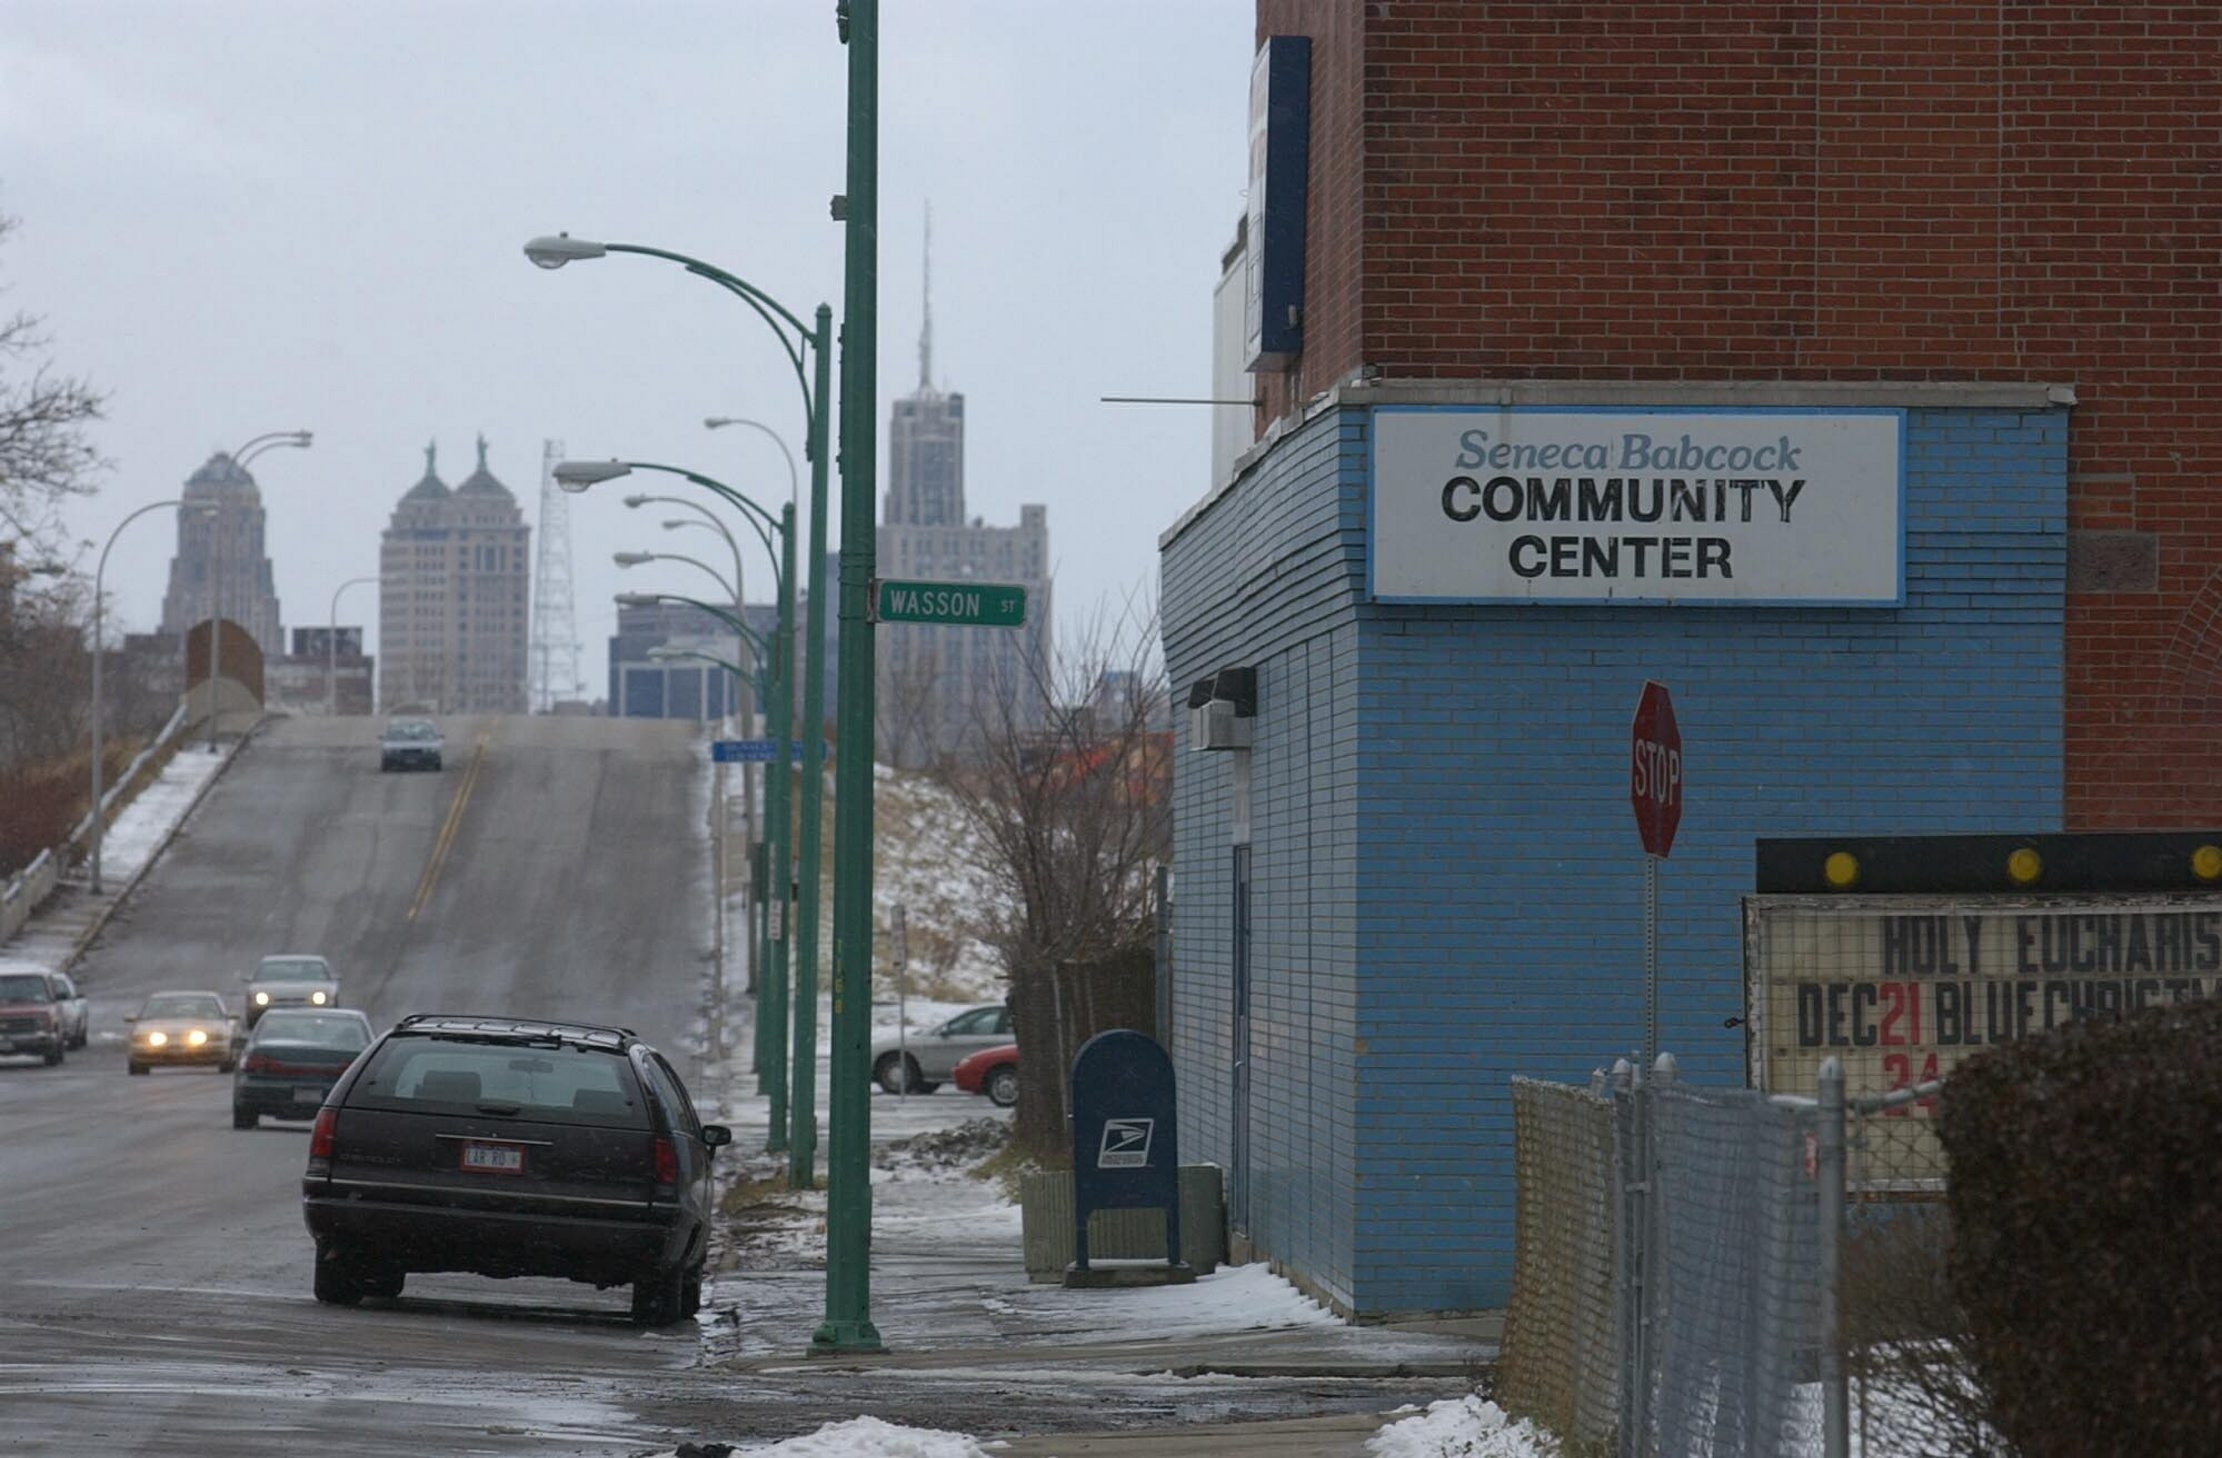 A new $6.1 million Seneca-Babcock Community Center will be built at 82 Harrison St., a quarter-mile from its current location at 1168 Seneca St., pictured here. (Buffalo News file photo)